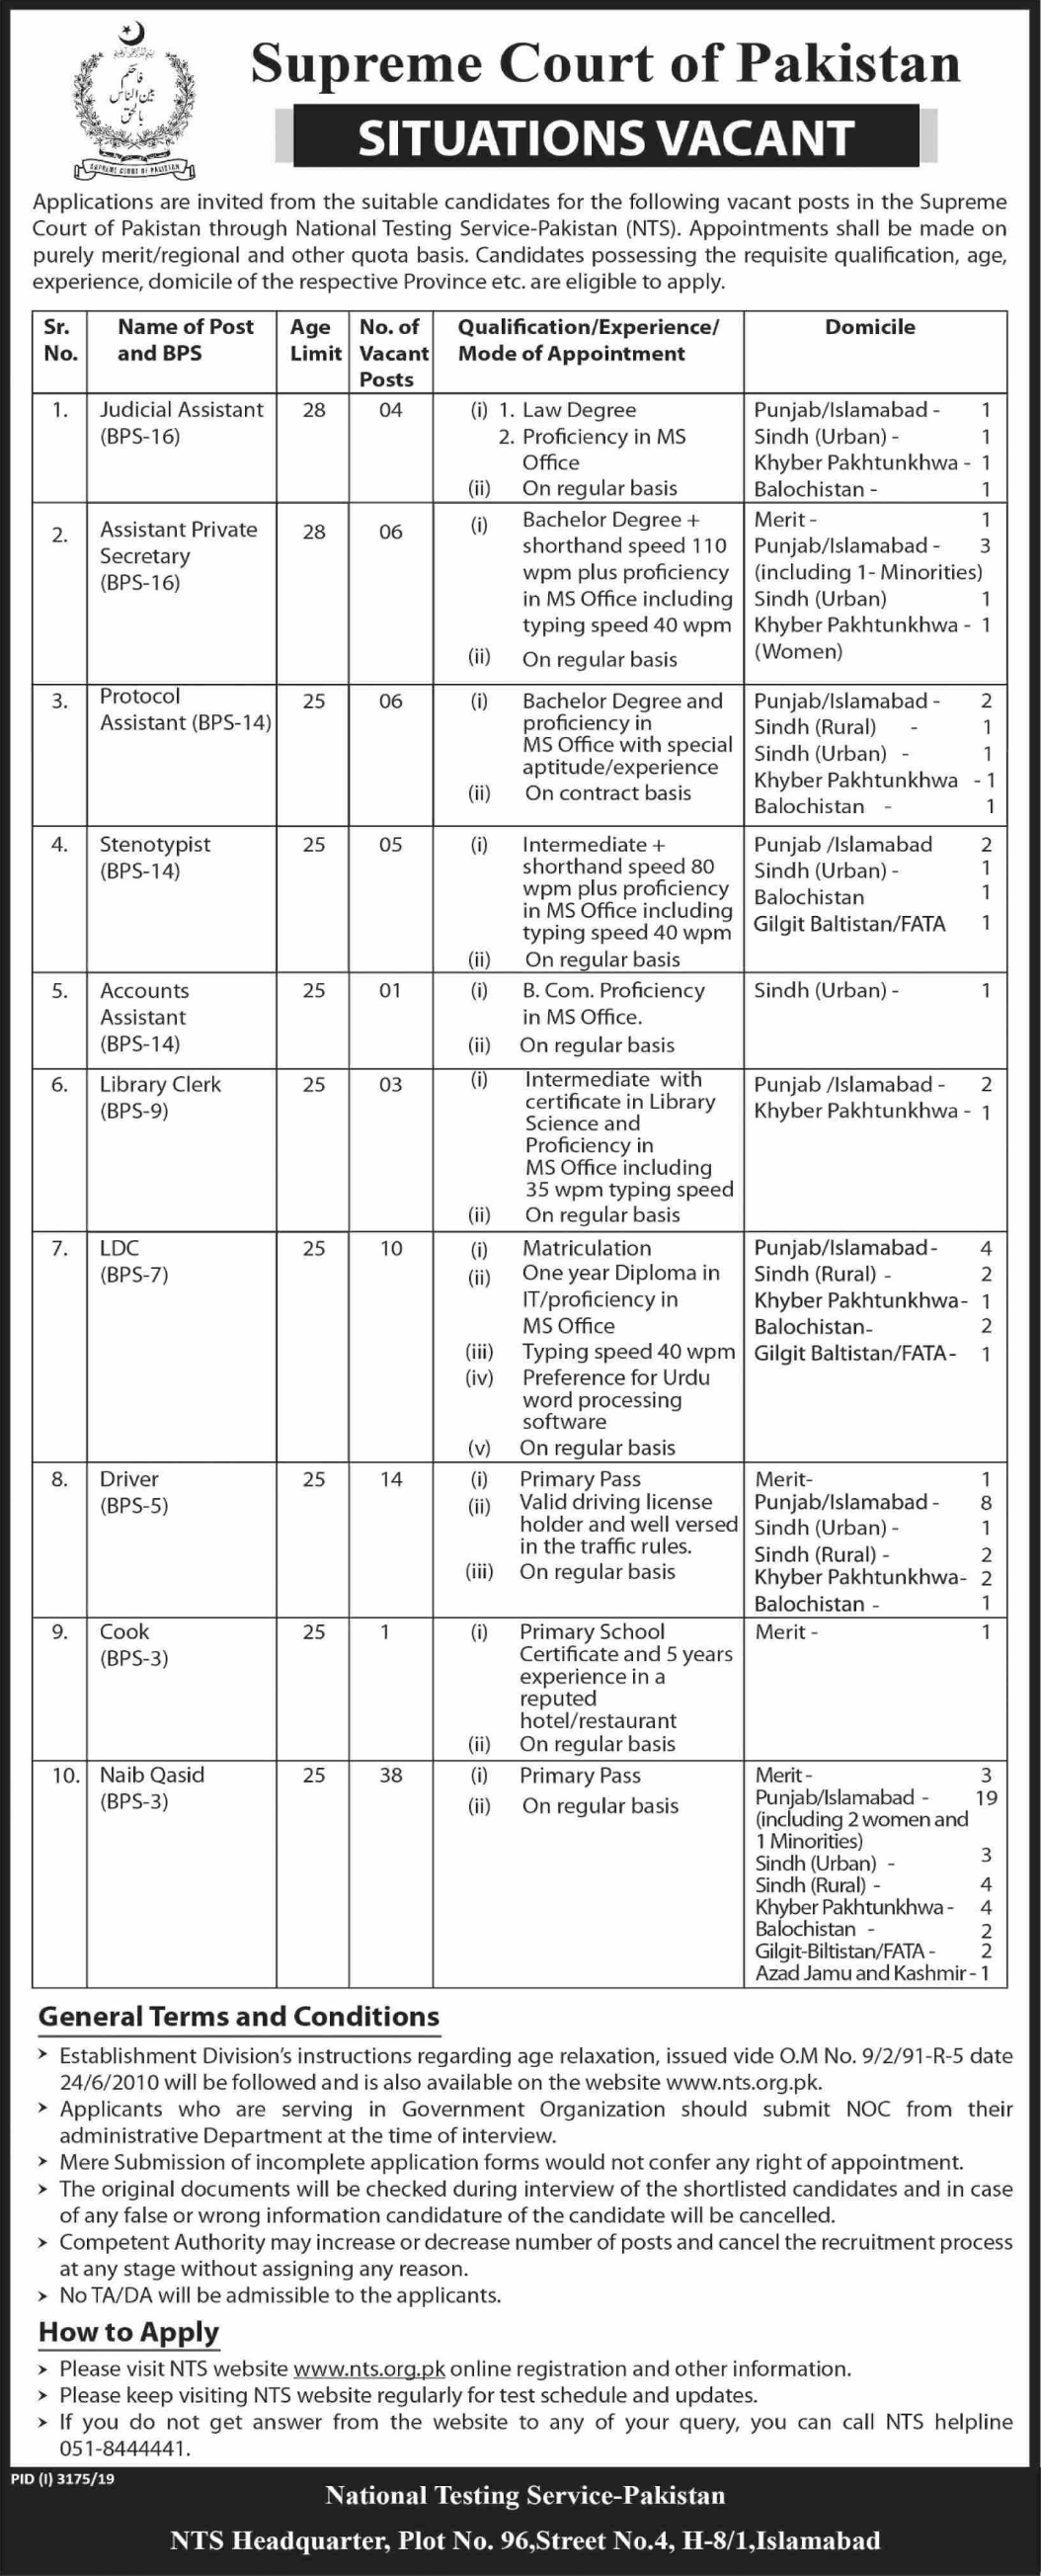 Supreme Court of Pakistan Jobs NTS Test Roll No Slip LDC Library Clerk Skill Test